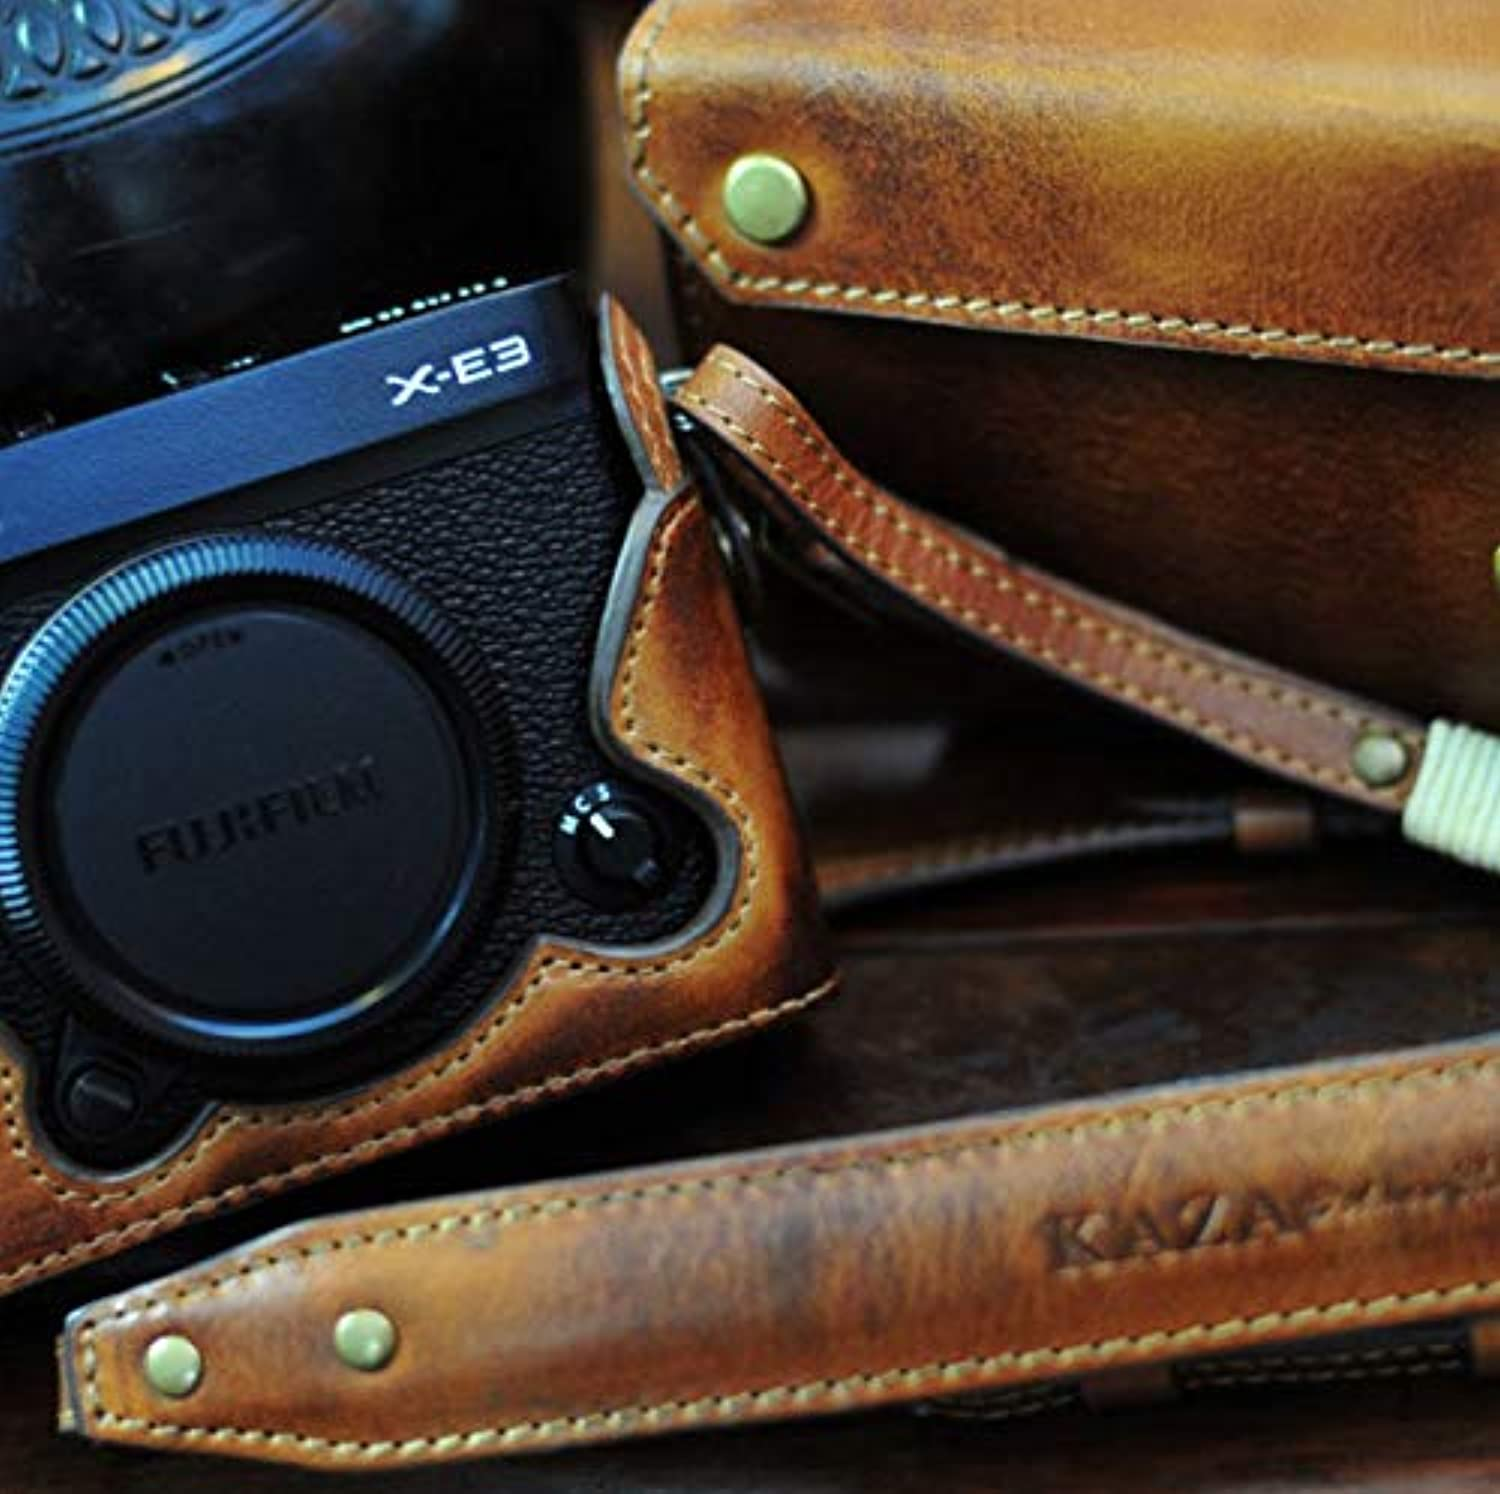 Kaza Combo Set Full Leather Case + Half Leather Case with Strap for Fujifilm XE3 (Vintage Brown)